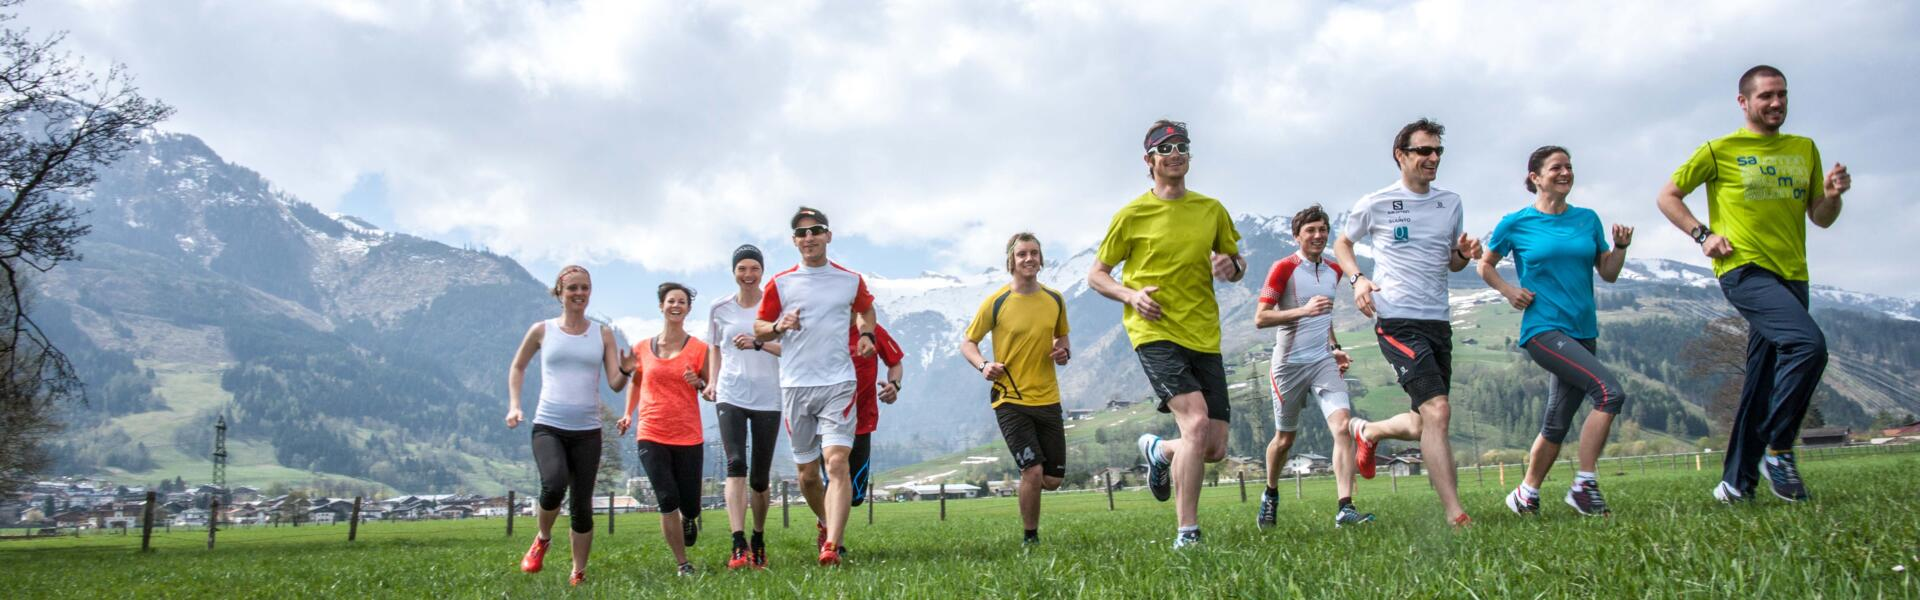 running group sports holiday zell am see-kaprun